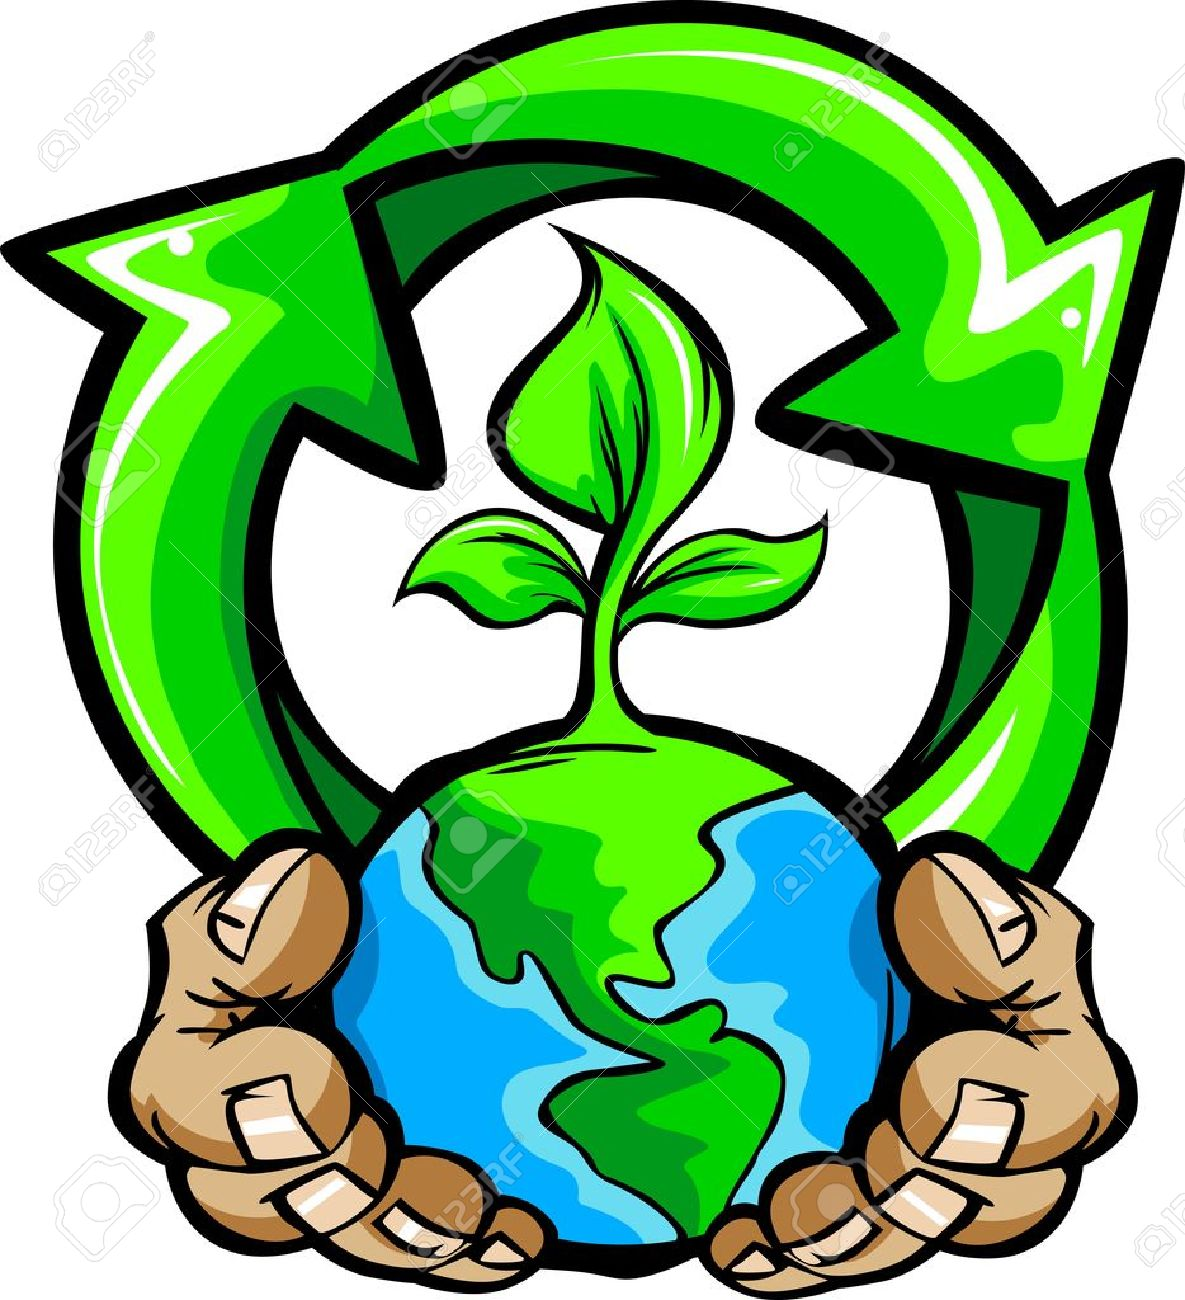 1185x1300 Cartoon Image Of A Hands Holding Planet Earth With A Green Plant